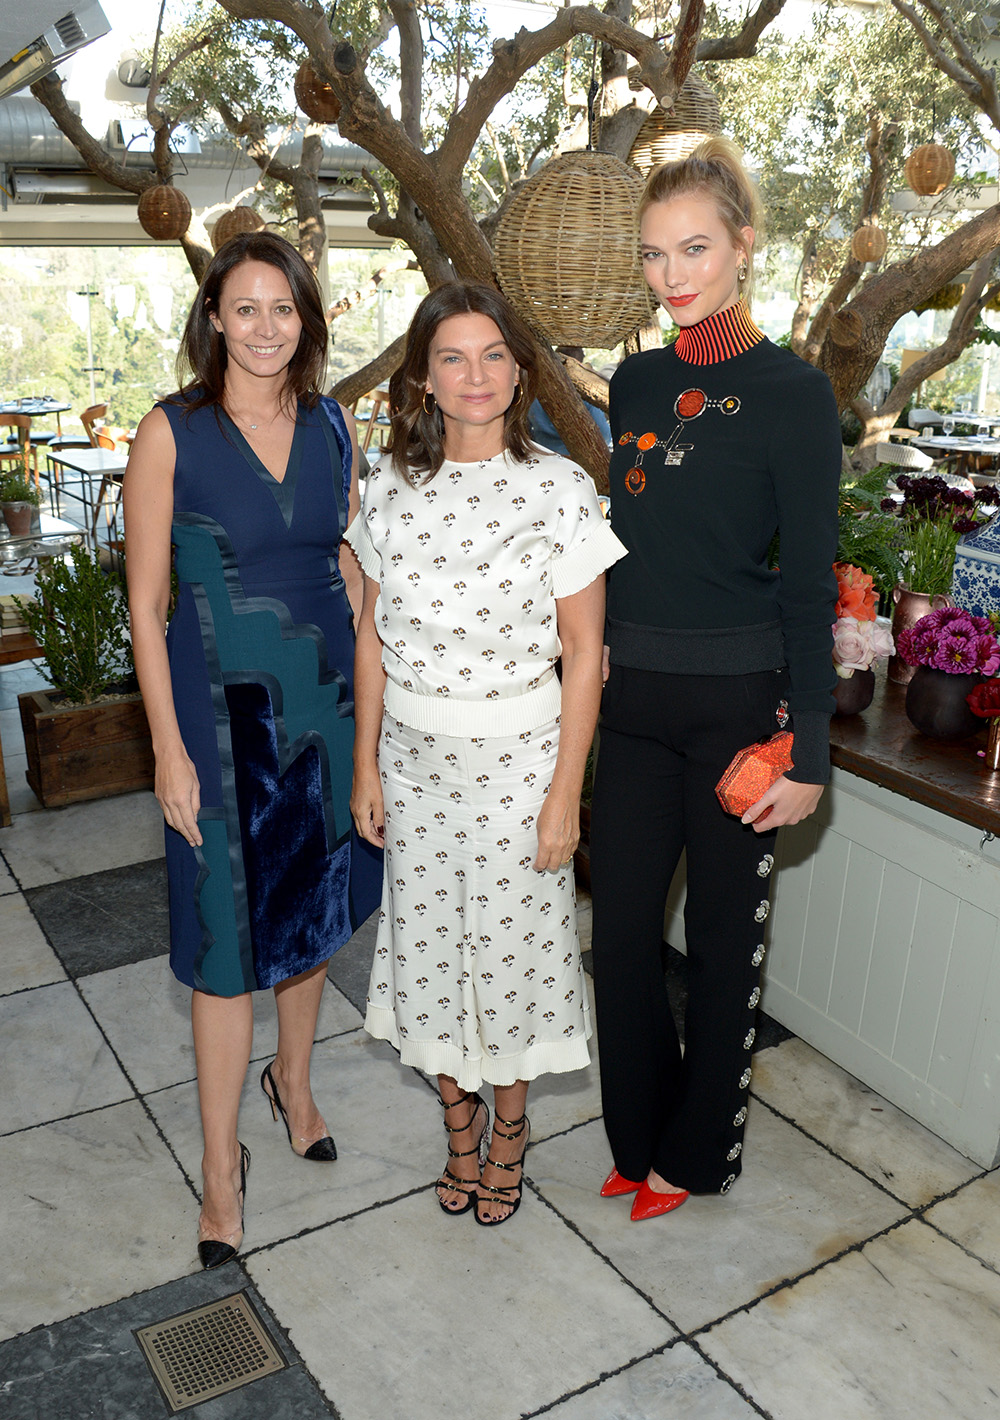 (L-R) Chief Executive of the British Fashion Council Caroline Rush, British Fashion Council Chairwoman Natalie Massenet, and fashion model Karlie Kloss attend The Fashion Awards 2016 Official Nominees Announcement Brunch at Soho House on October 25, 2016 in West Hollywood, California. (Photo by Matt Winkelmeyer/Getty Images for The British Fashion Council)